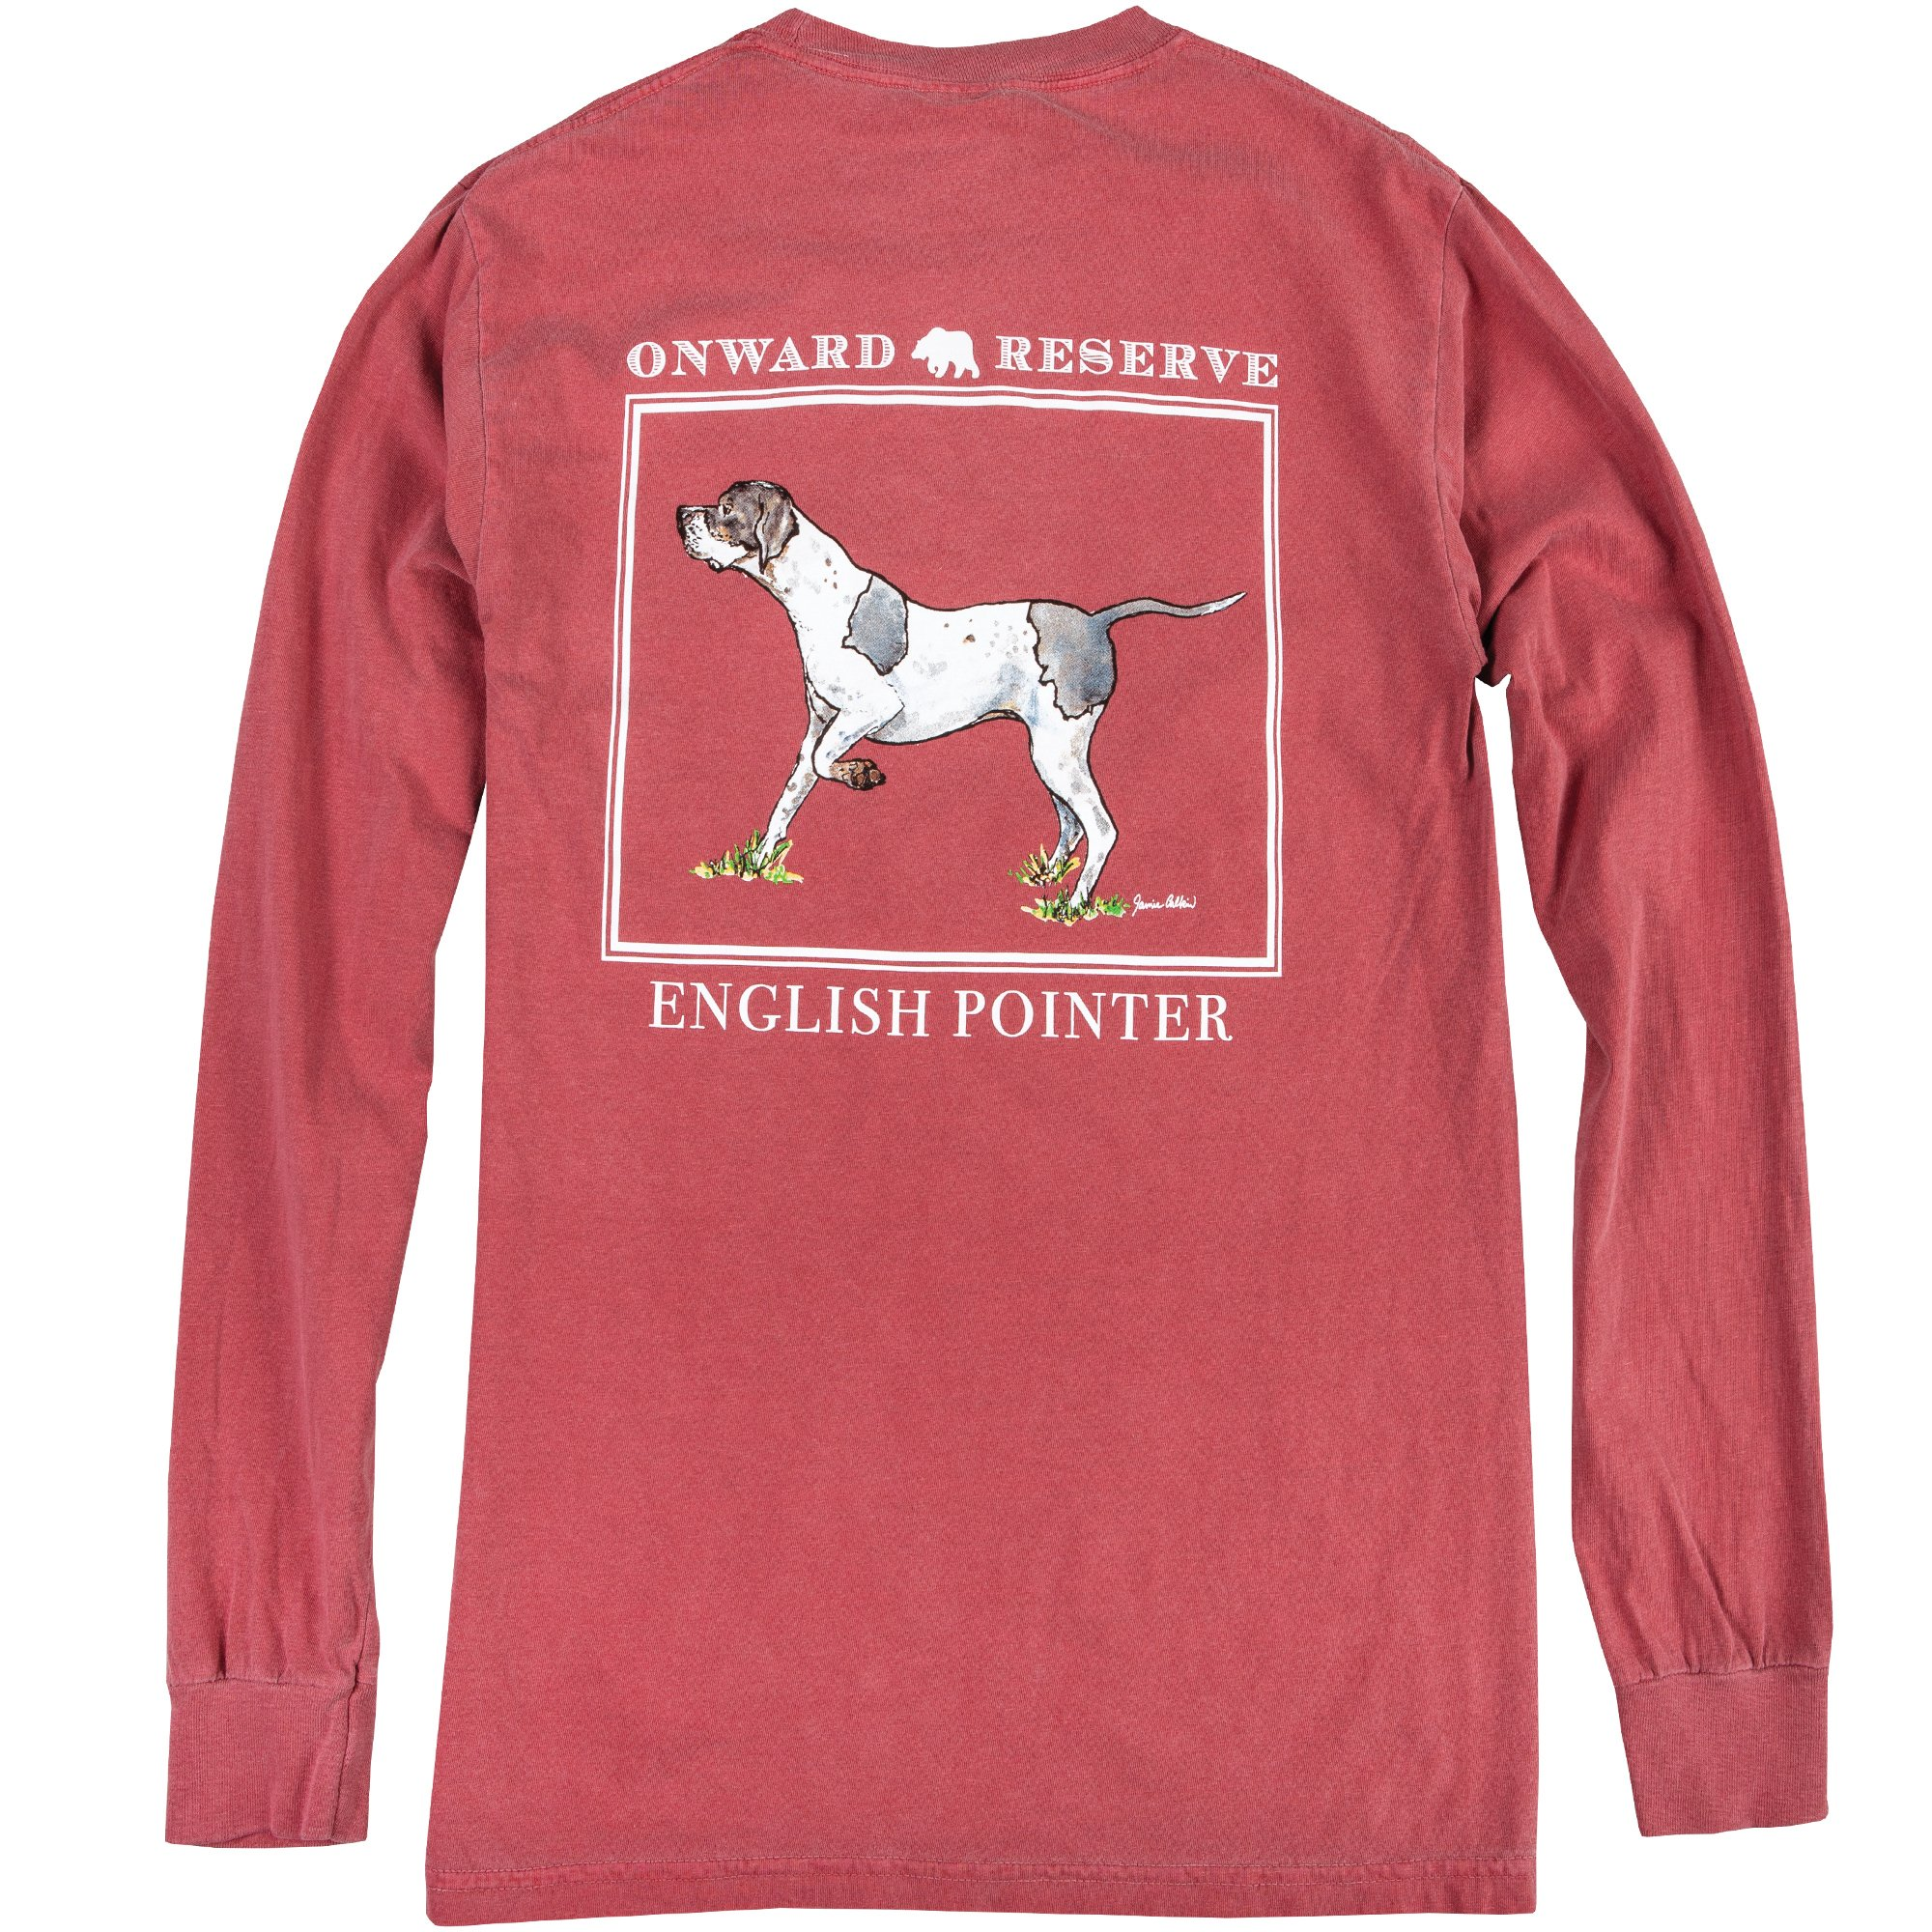 OR-Jamie-Tee-LS-English-Pointer-Rust-Back.jpg